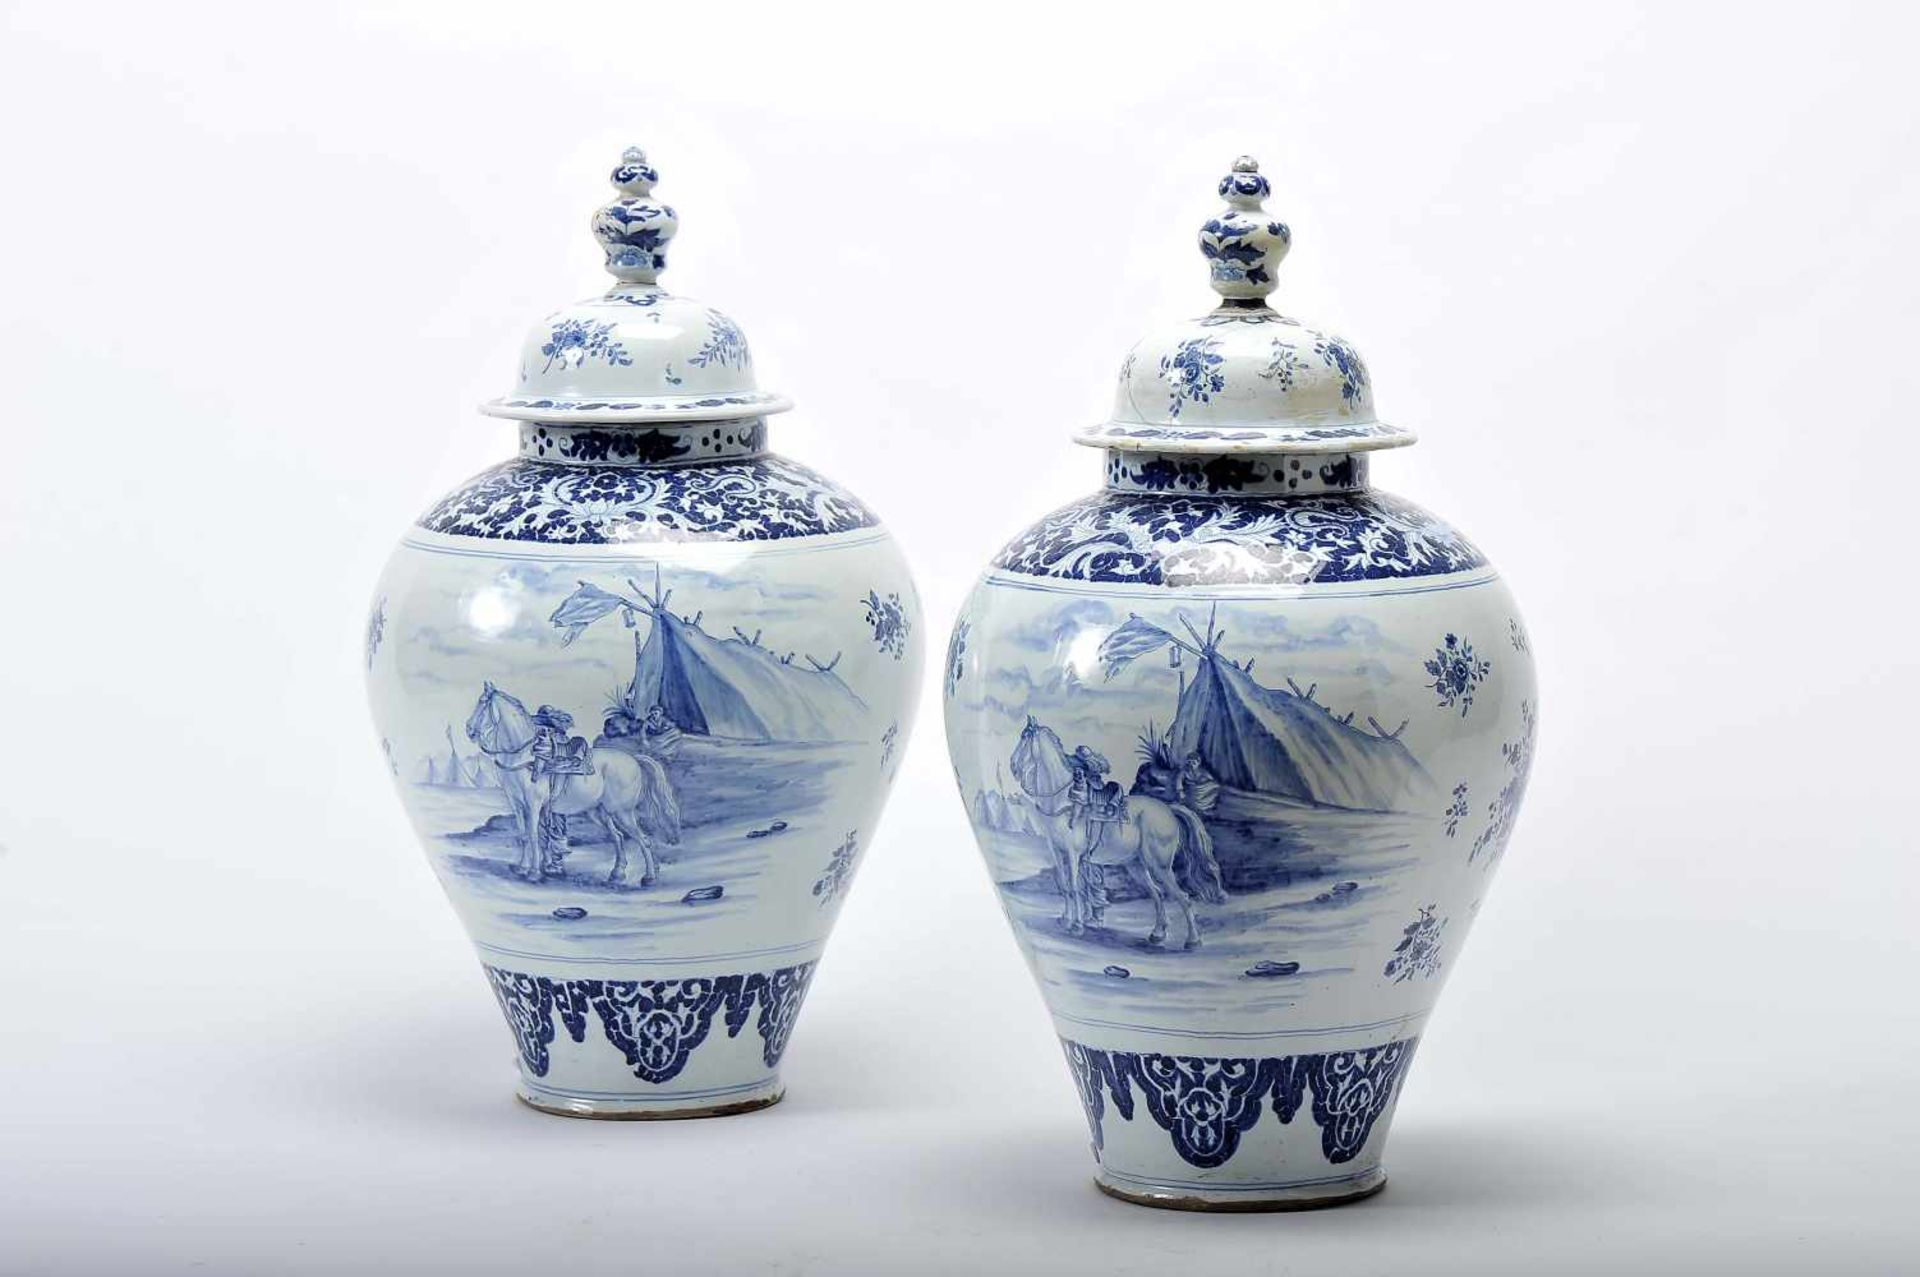 "Los 47 - A Pair of PotsA Pair of Pots, Delft faience, blue decoration ""Landscape with camping"" and..."